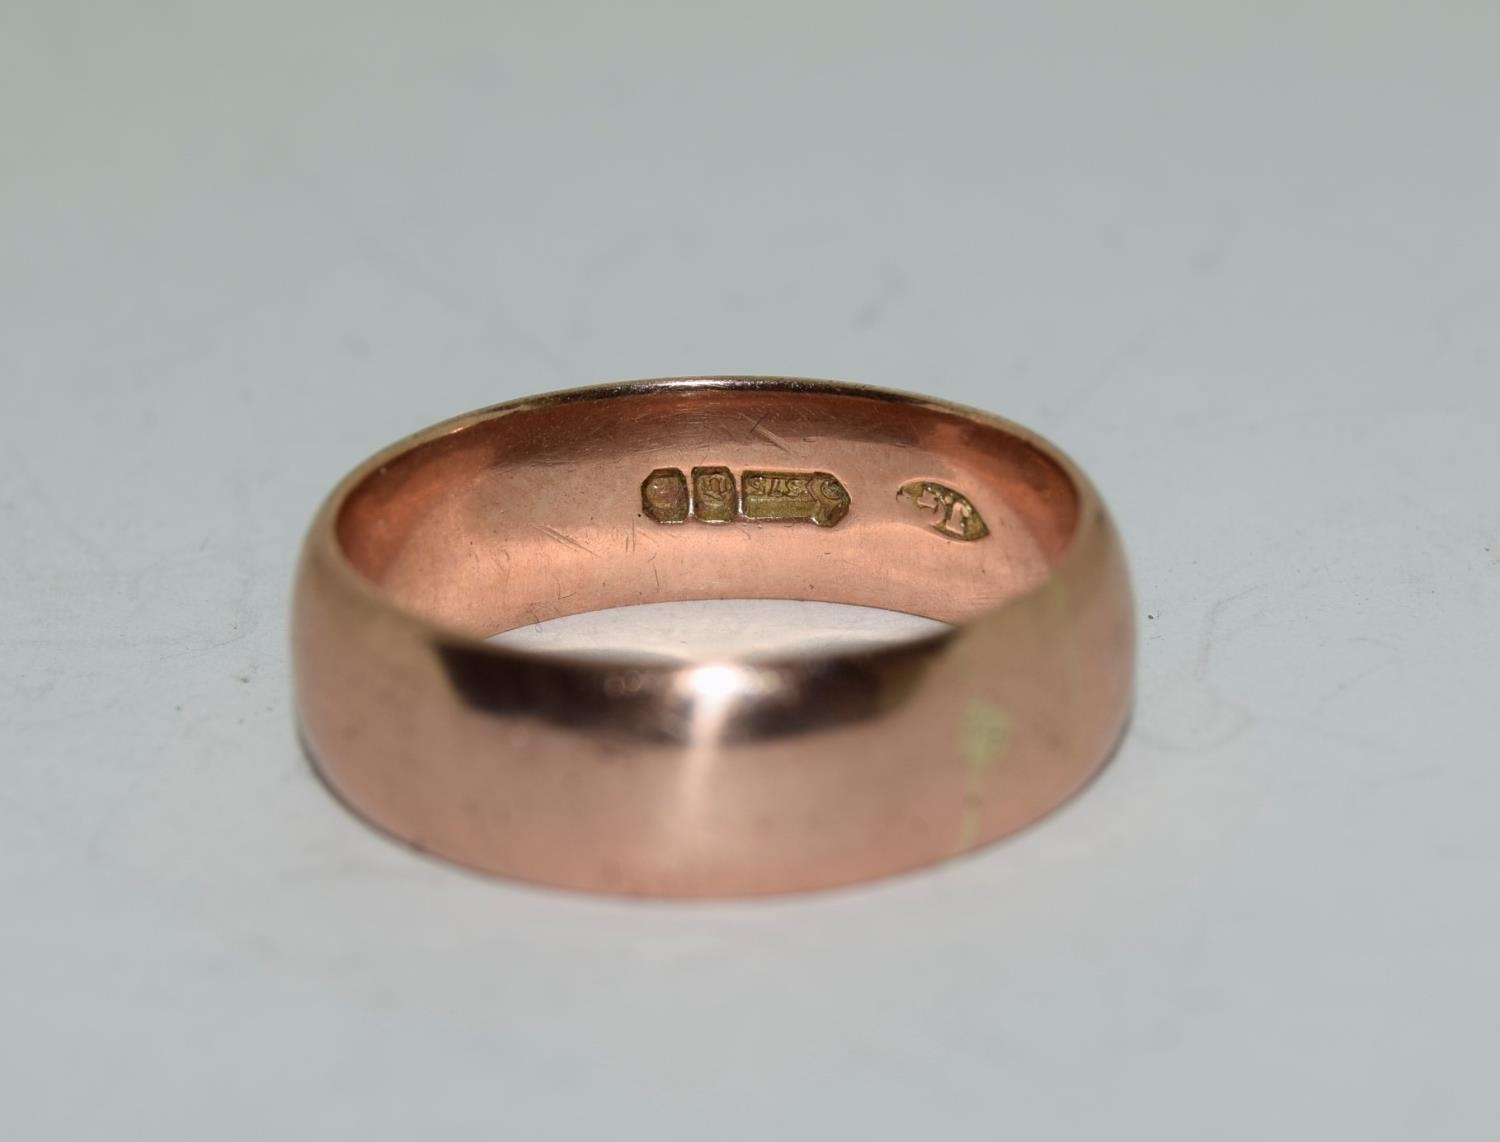 9ct gold mans wedding band size X 8.7gm - Image 4 of 6